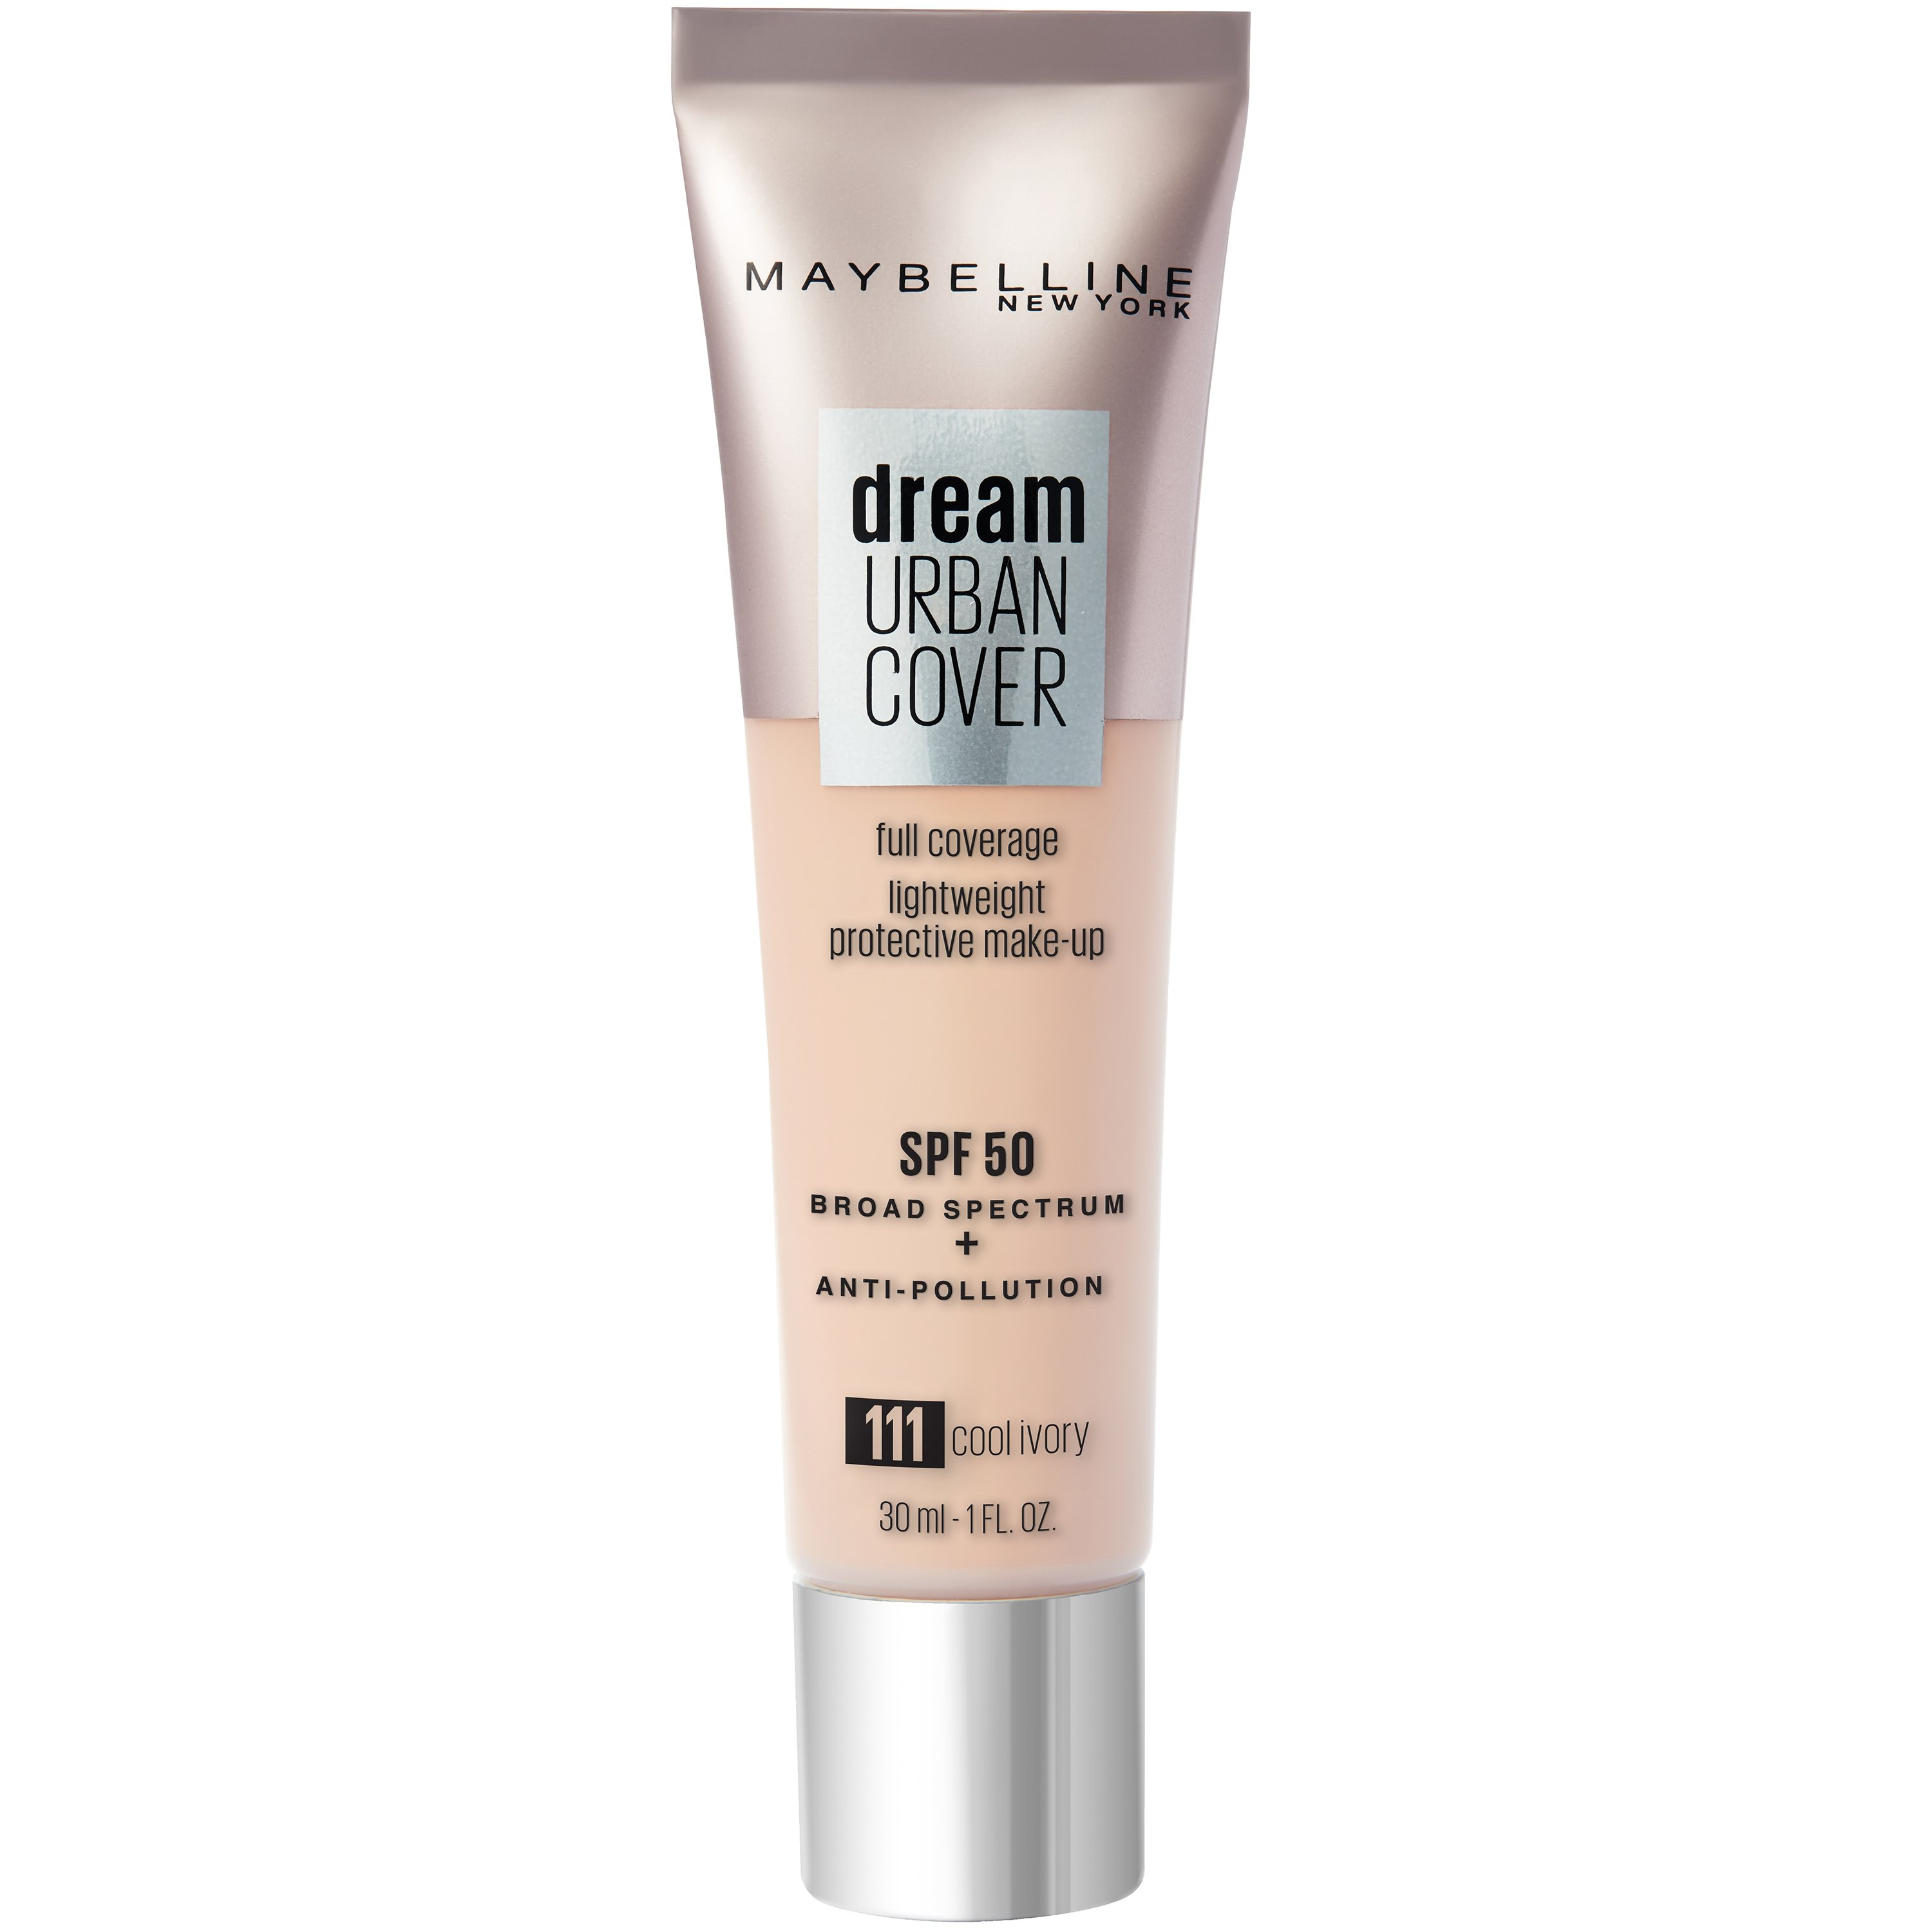 Maybelline - Dream Urban Cover Foundation - 111 Cool Ivory